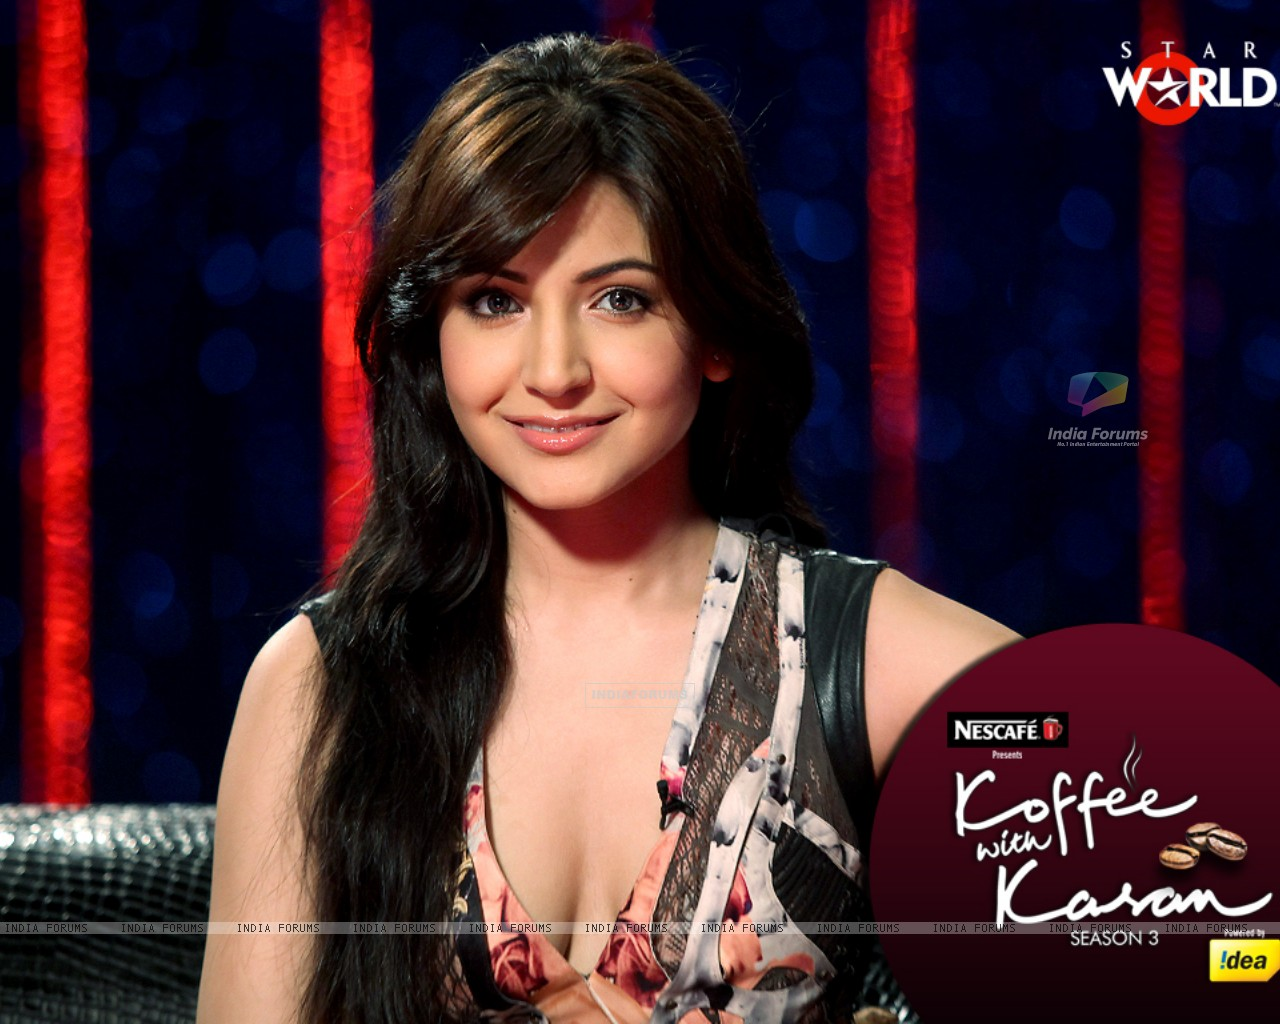 Anushka Sharma on Koffee with Karan Season 3 (147318) size:1280x1024